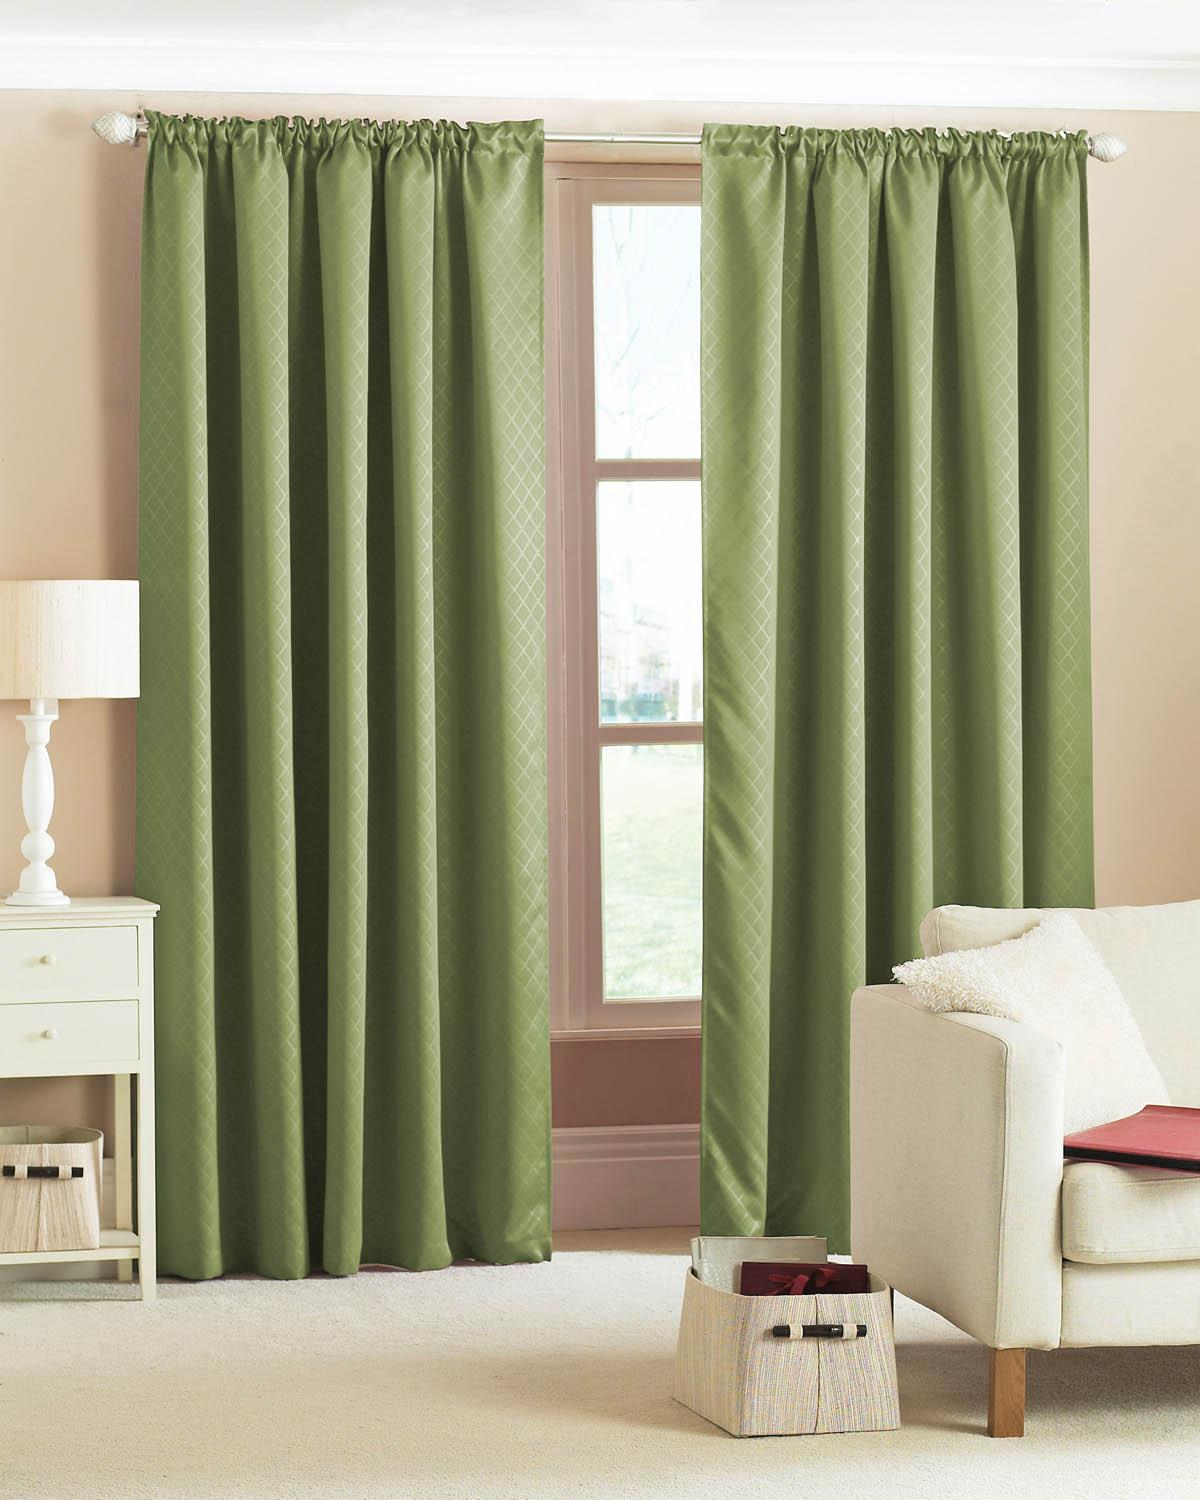 Diamond Woven Blackout Curtains Green Cheap Olive Blackout